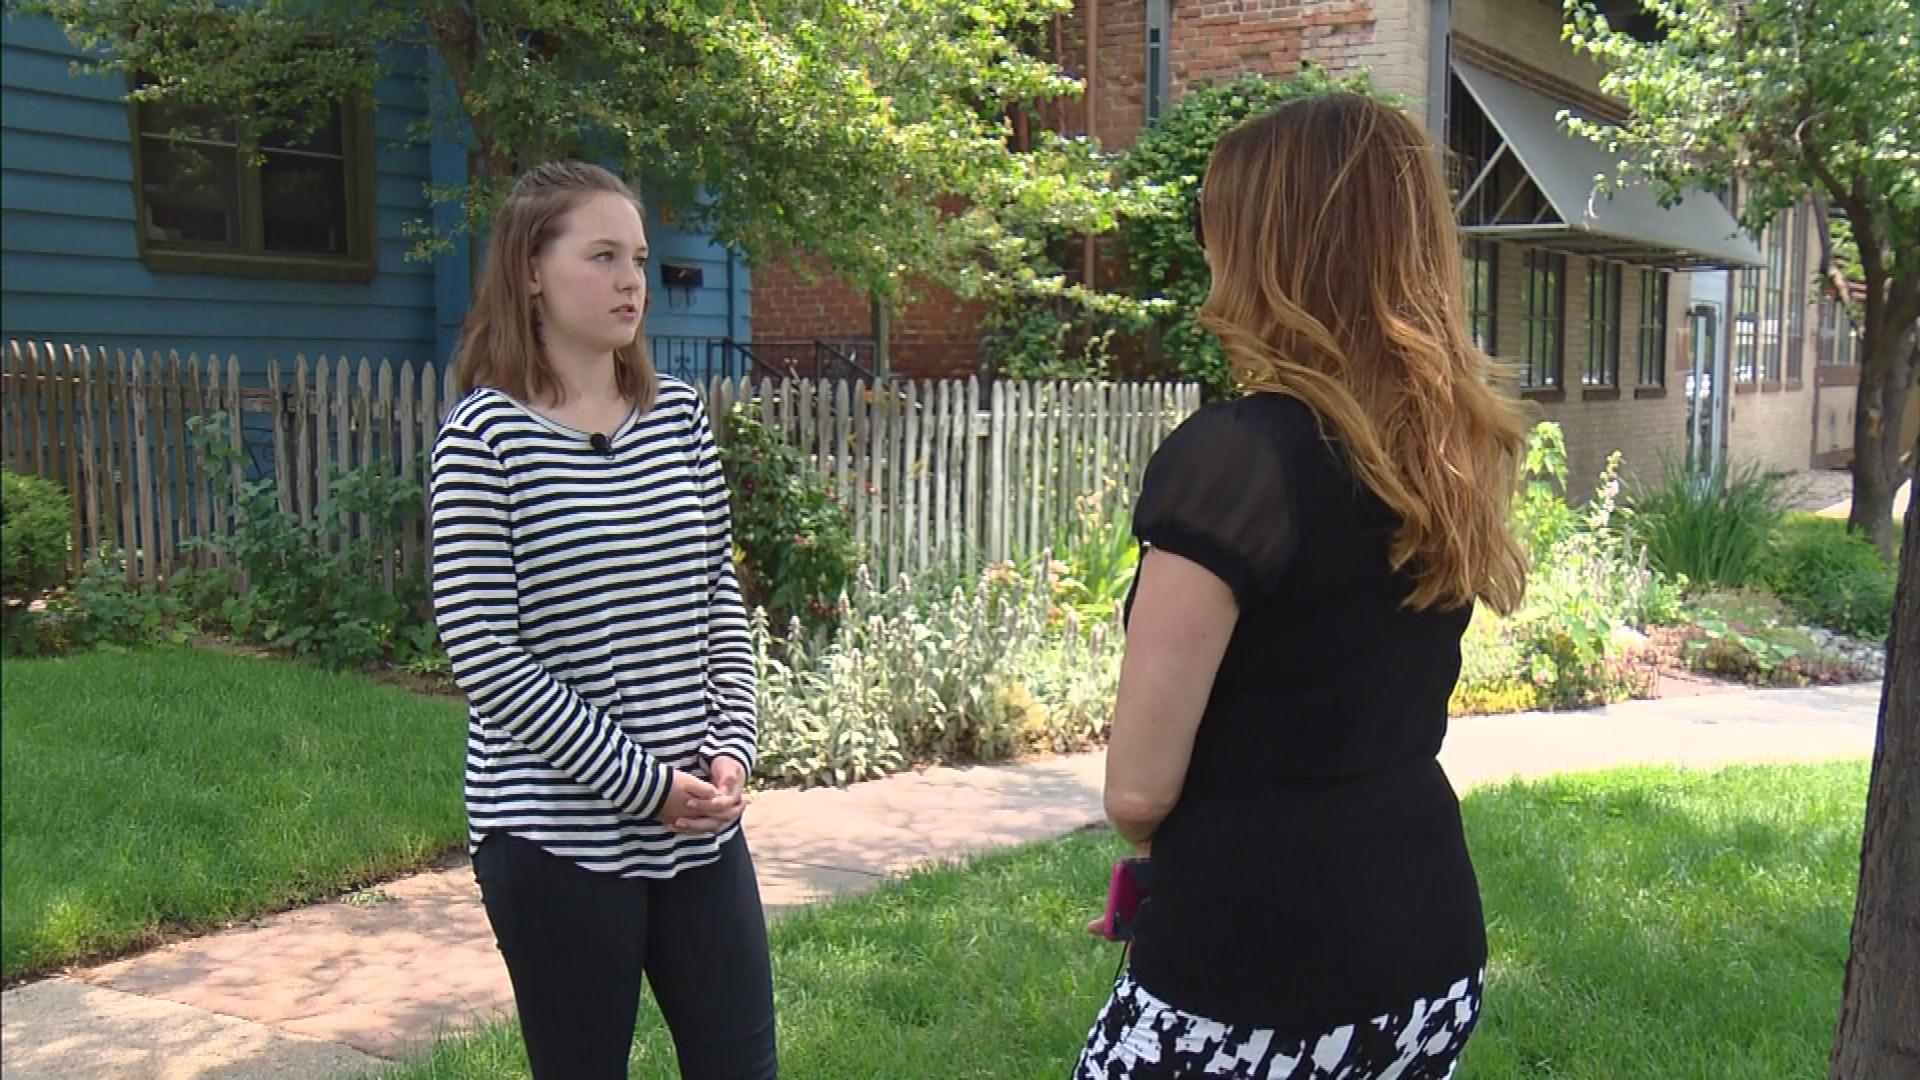 Grace Davis is interviewed by CBS4's Jennifer Brice (credit: CBS)